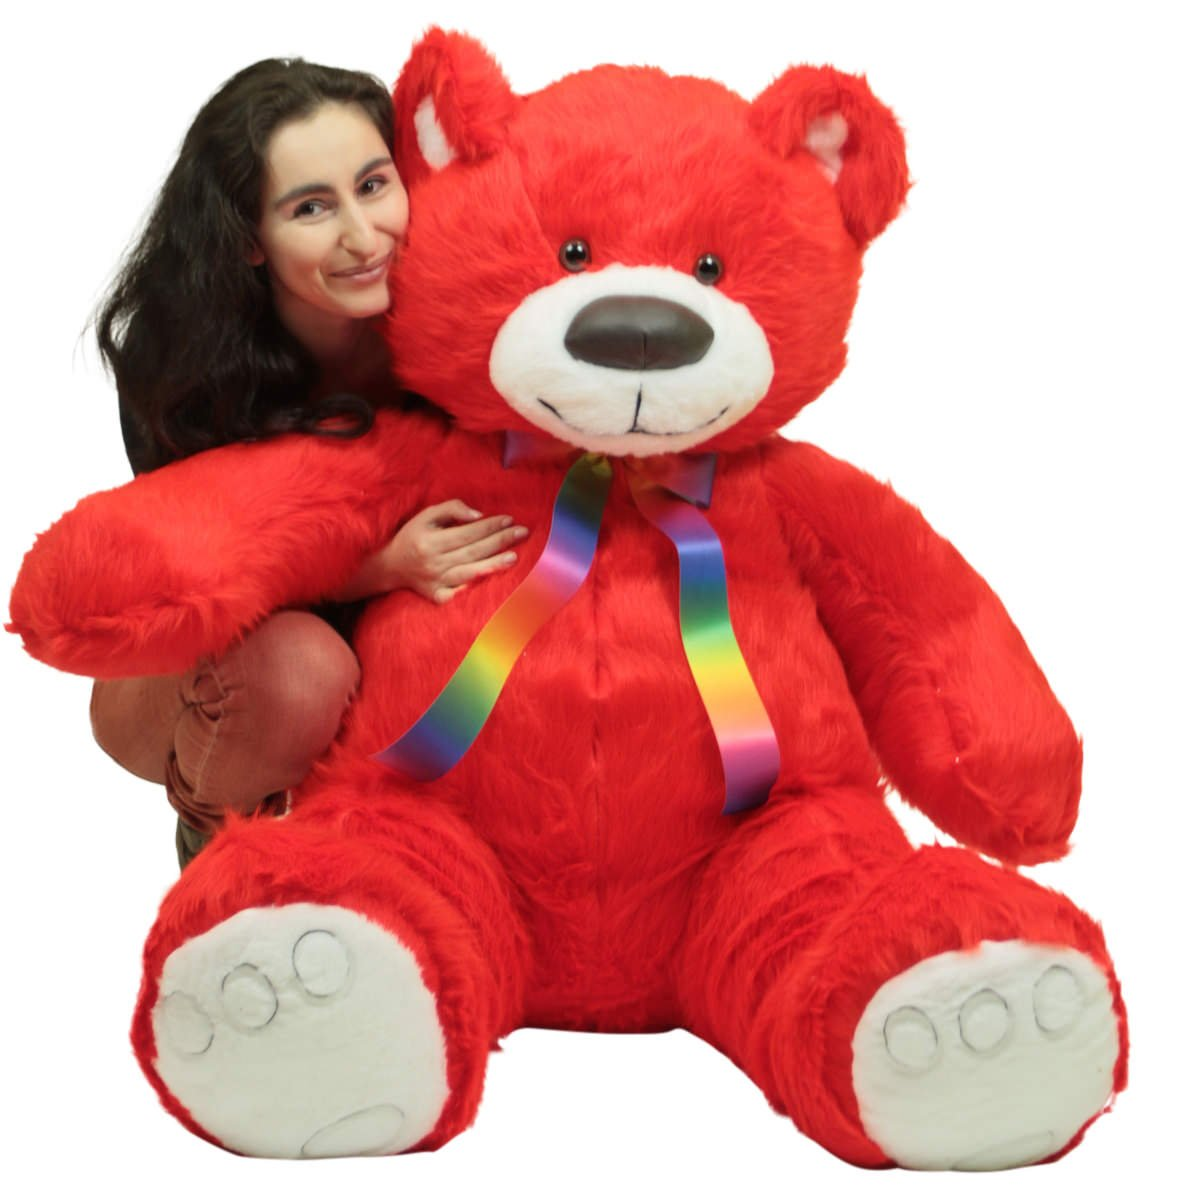 Big Plush Personalized Giant 5 Foot Red Teddy Bear, Soft Life Size Stuffed Animal Made in USA, Removable Neck Ribbon Customized with Your Message by Big Plush